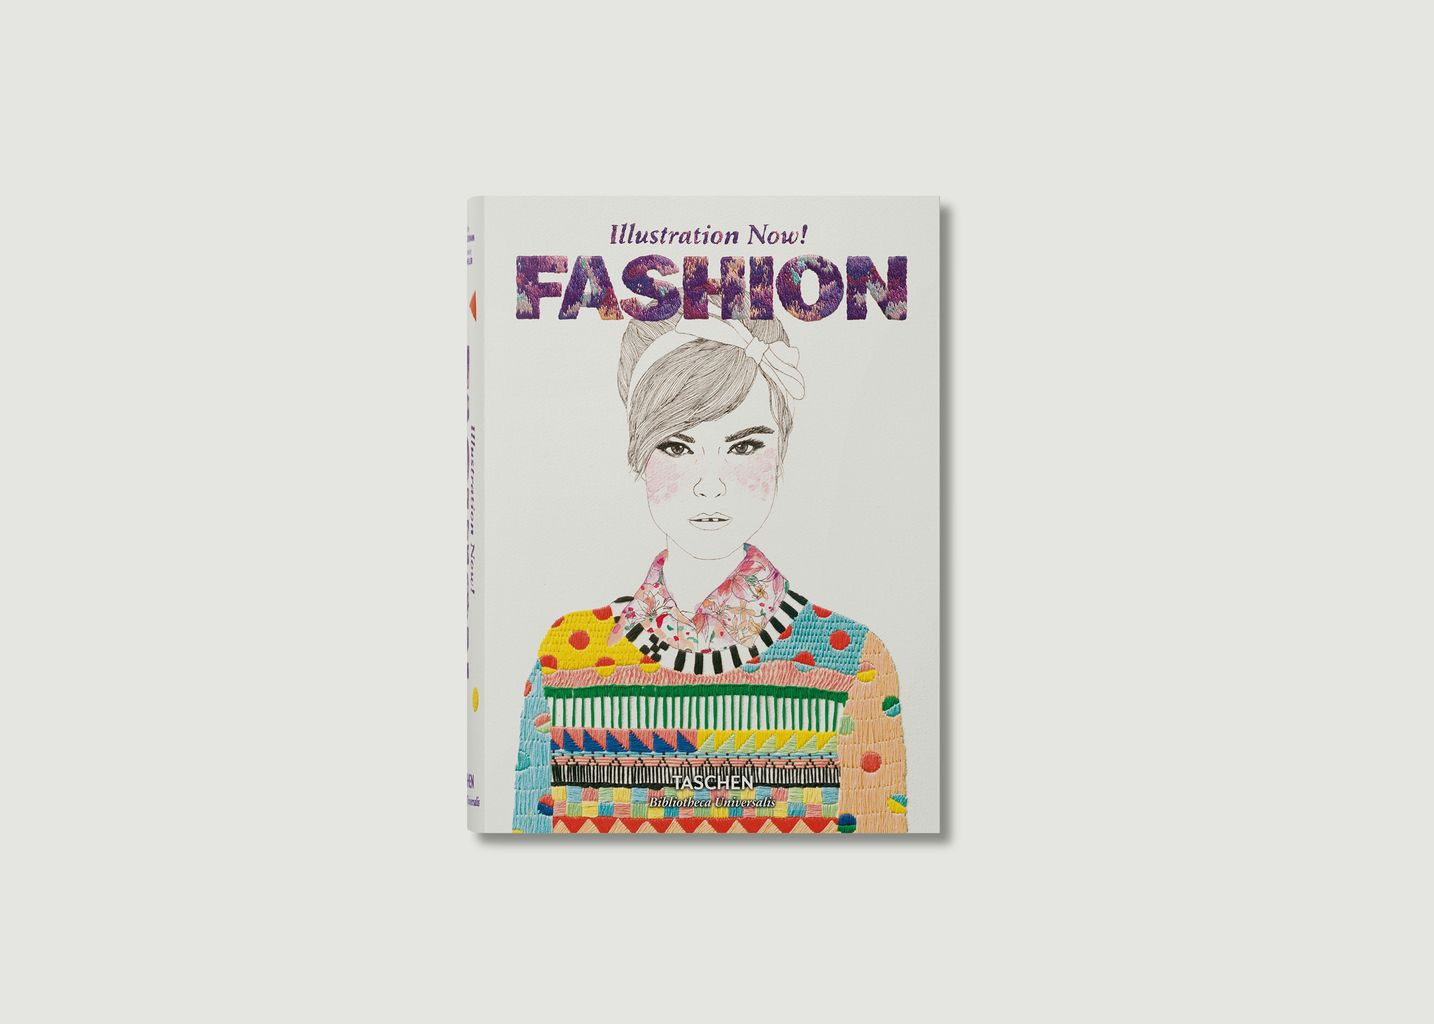 Illustration Now! Fashion  - Taschen